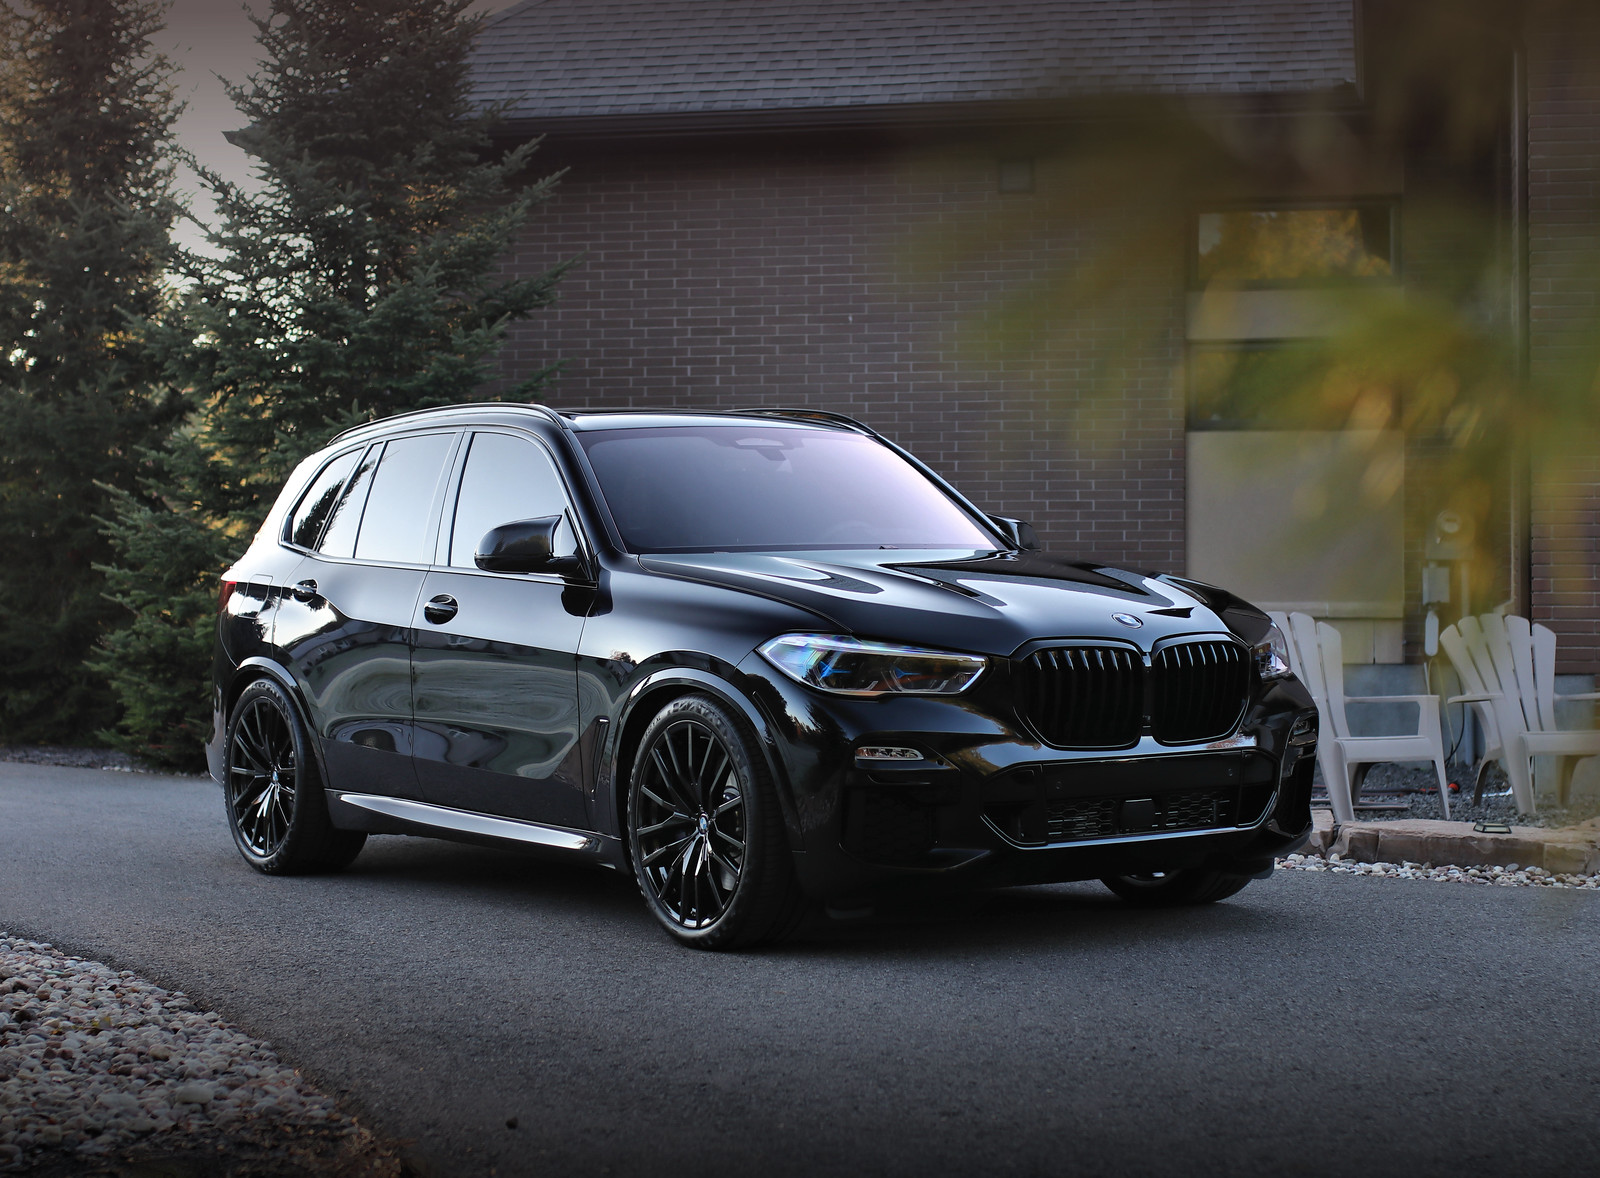 Carbon Black Vs Mineral White Page 2 Bmw X5 Forum G05